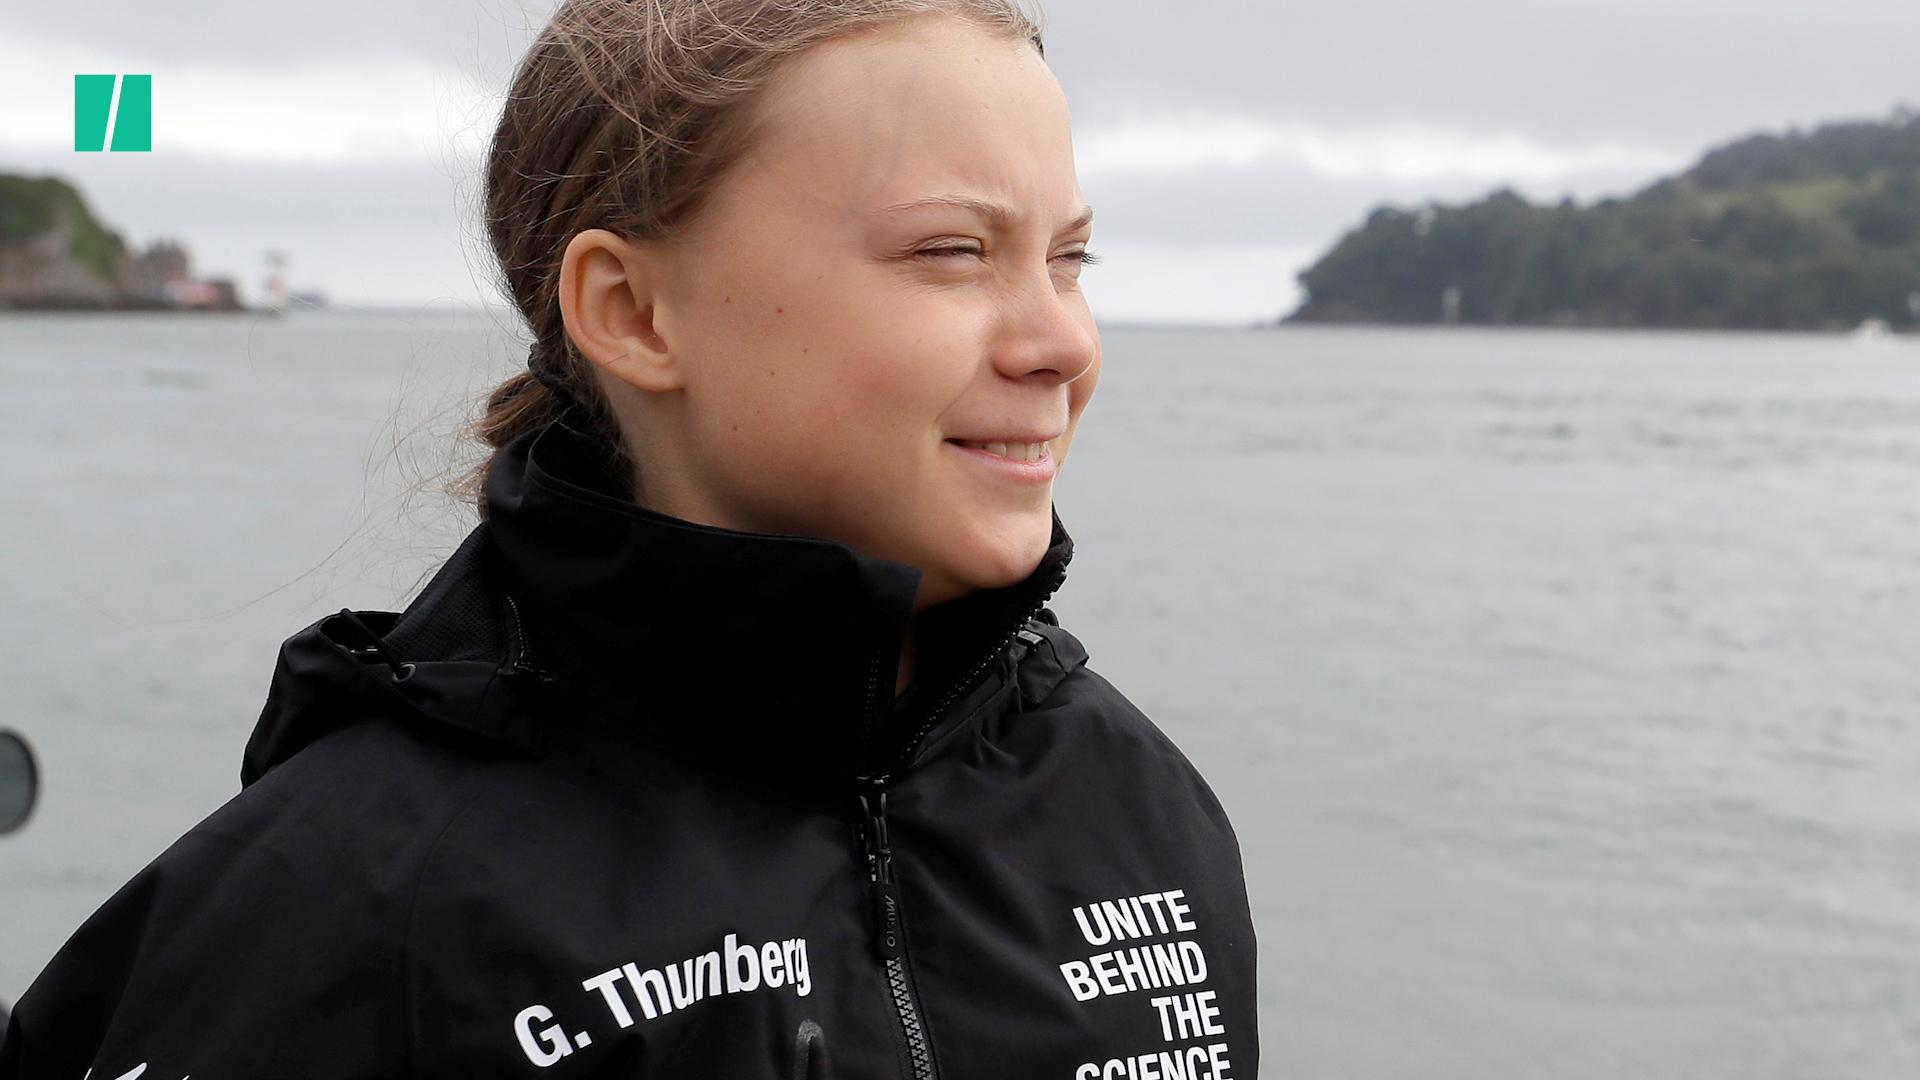 Arron Banks Is Being Mauled For His 'Vile' Tweet About Teenager Greta Thunberg